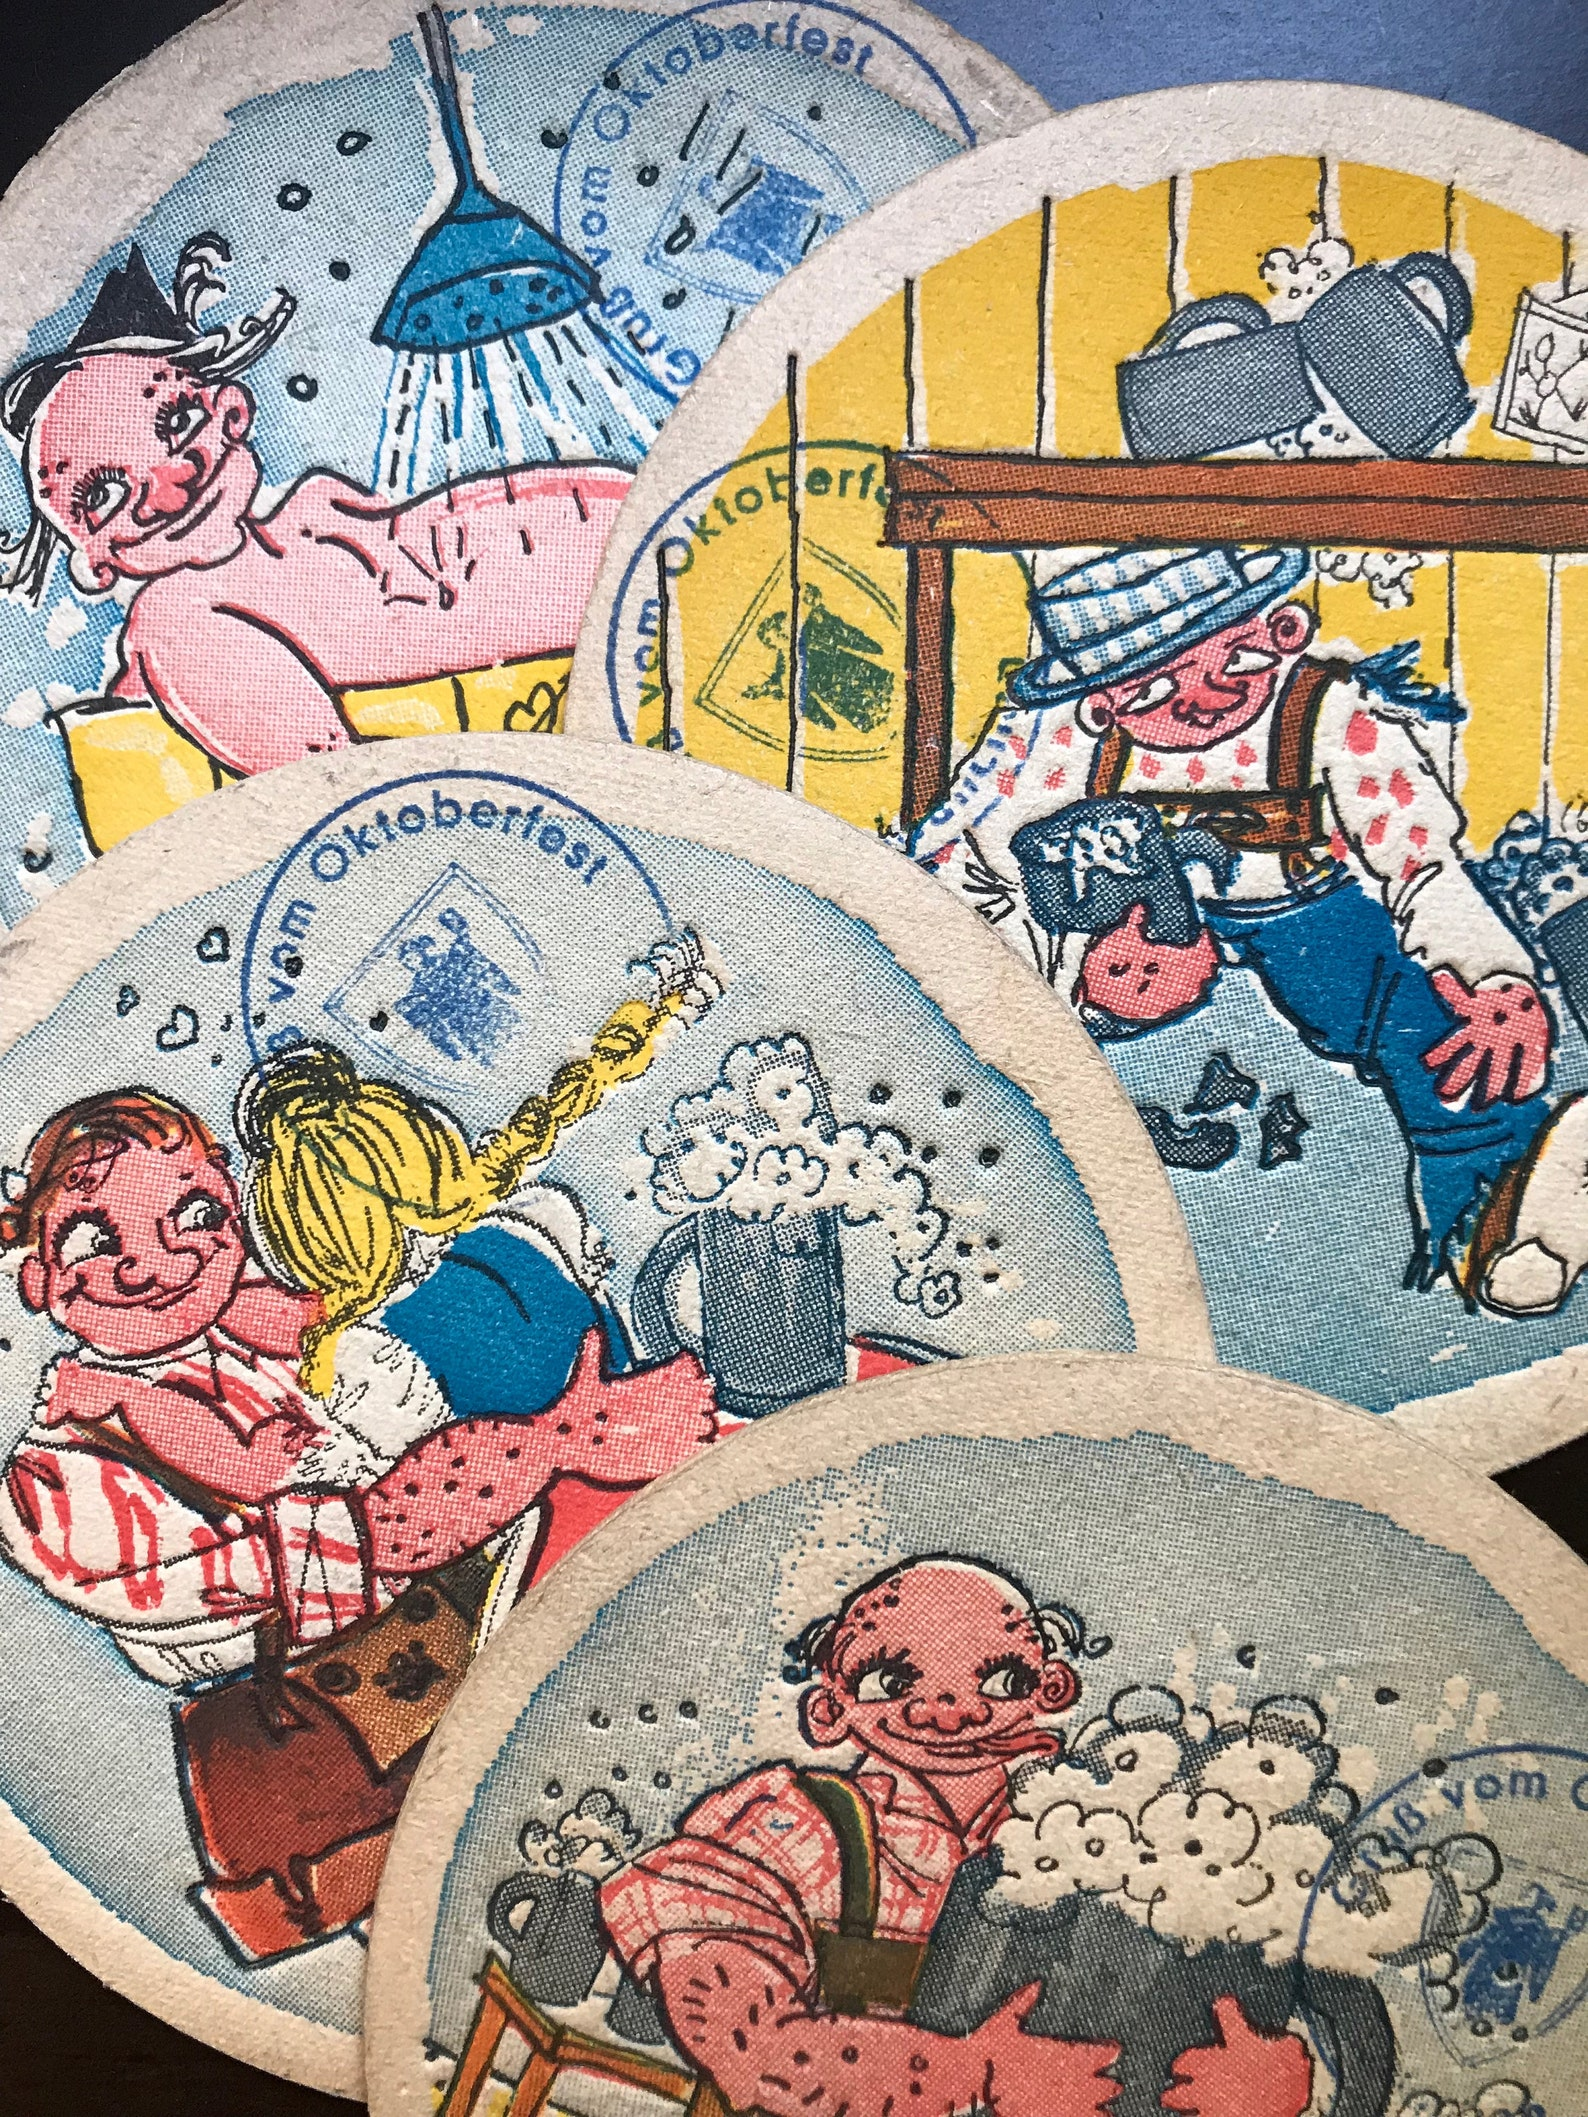 Set of 4 vintage pressed paper Oktoberfest beer coasters, funny charming illustrations Bierdeckel